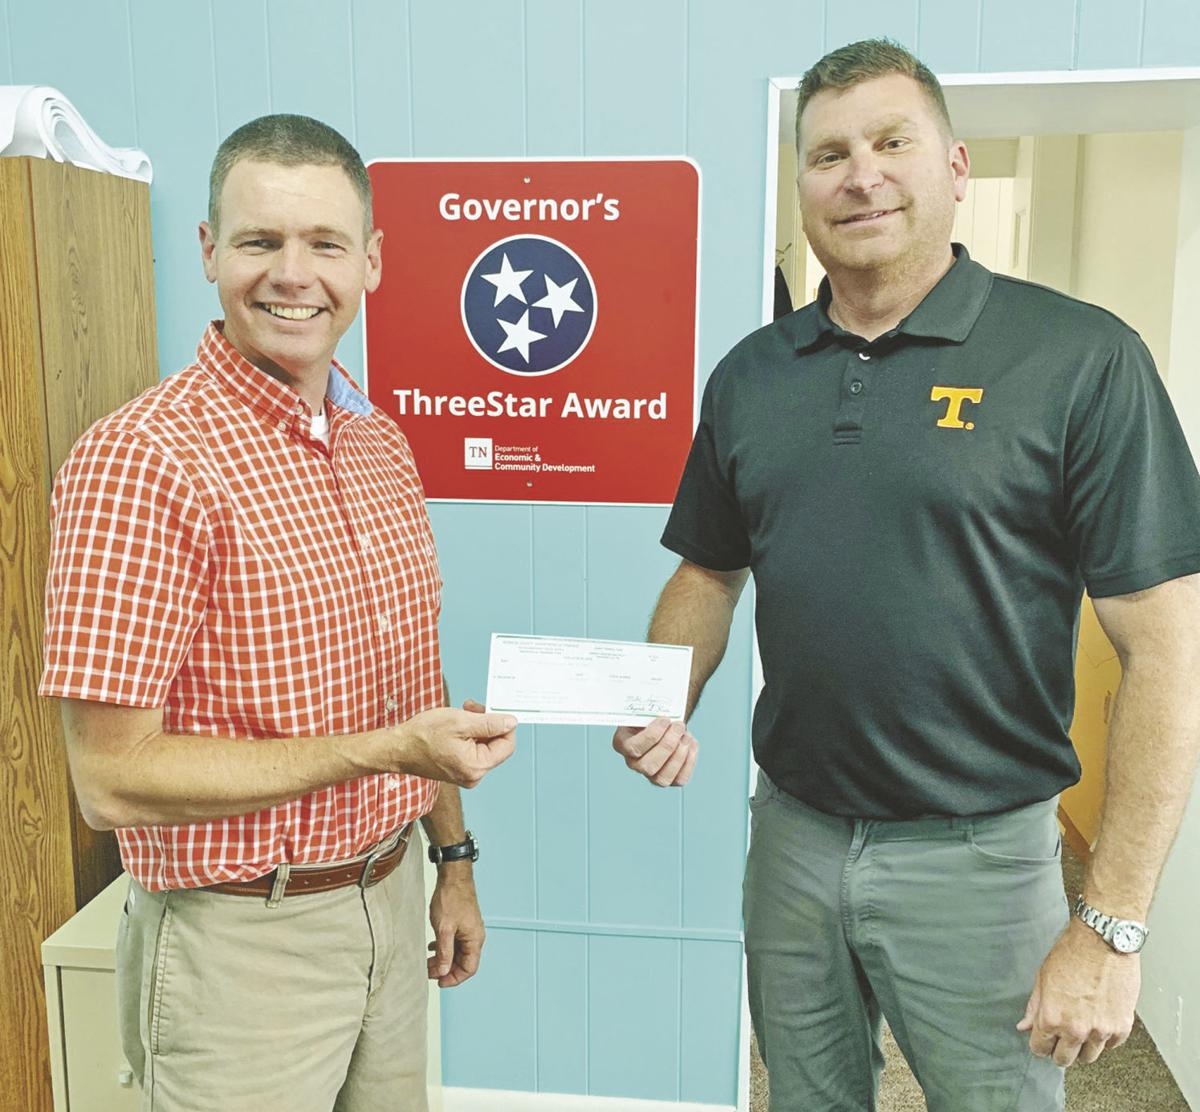 County gives $25,000 to Tellico Plains for community development